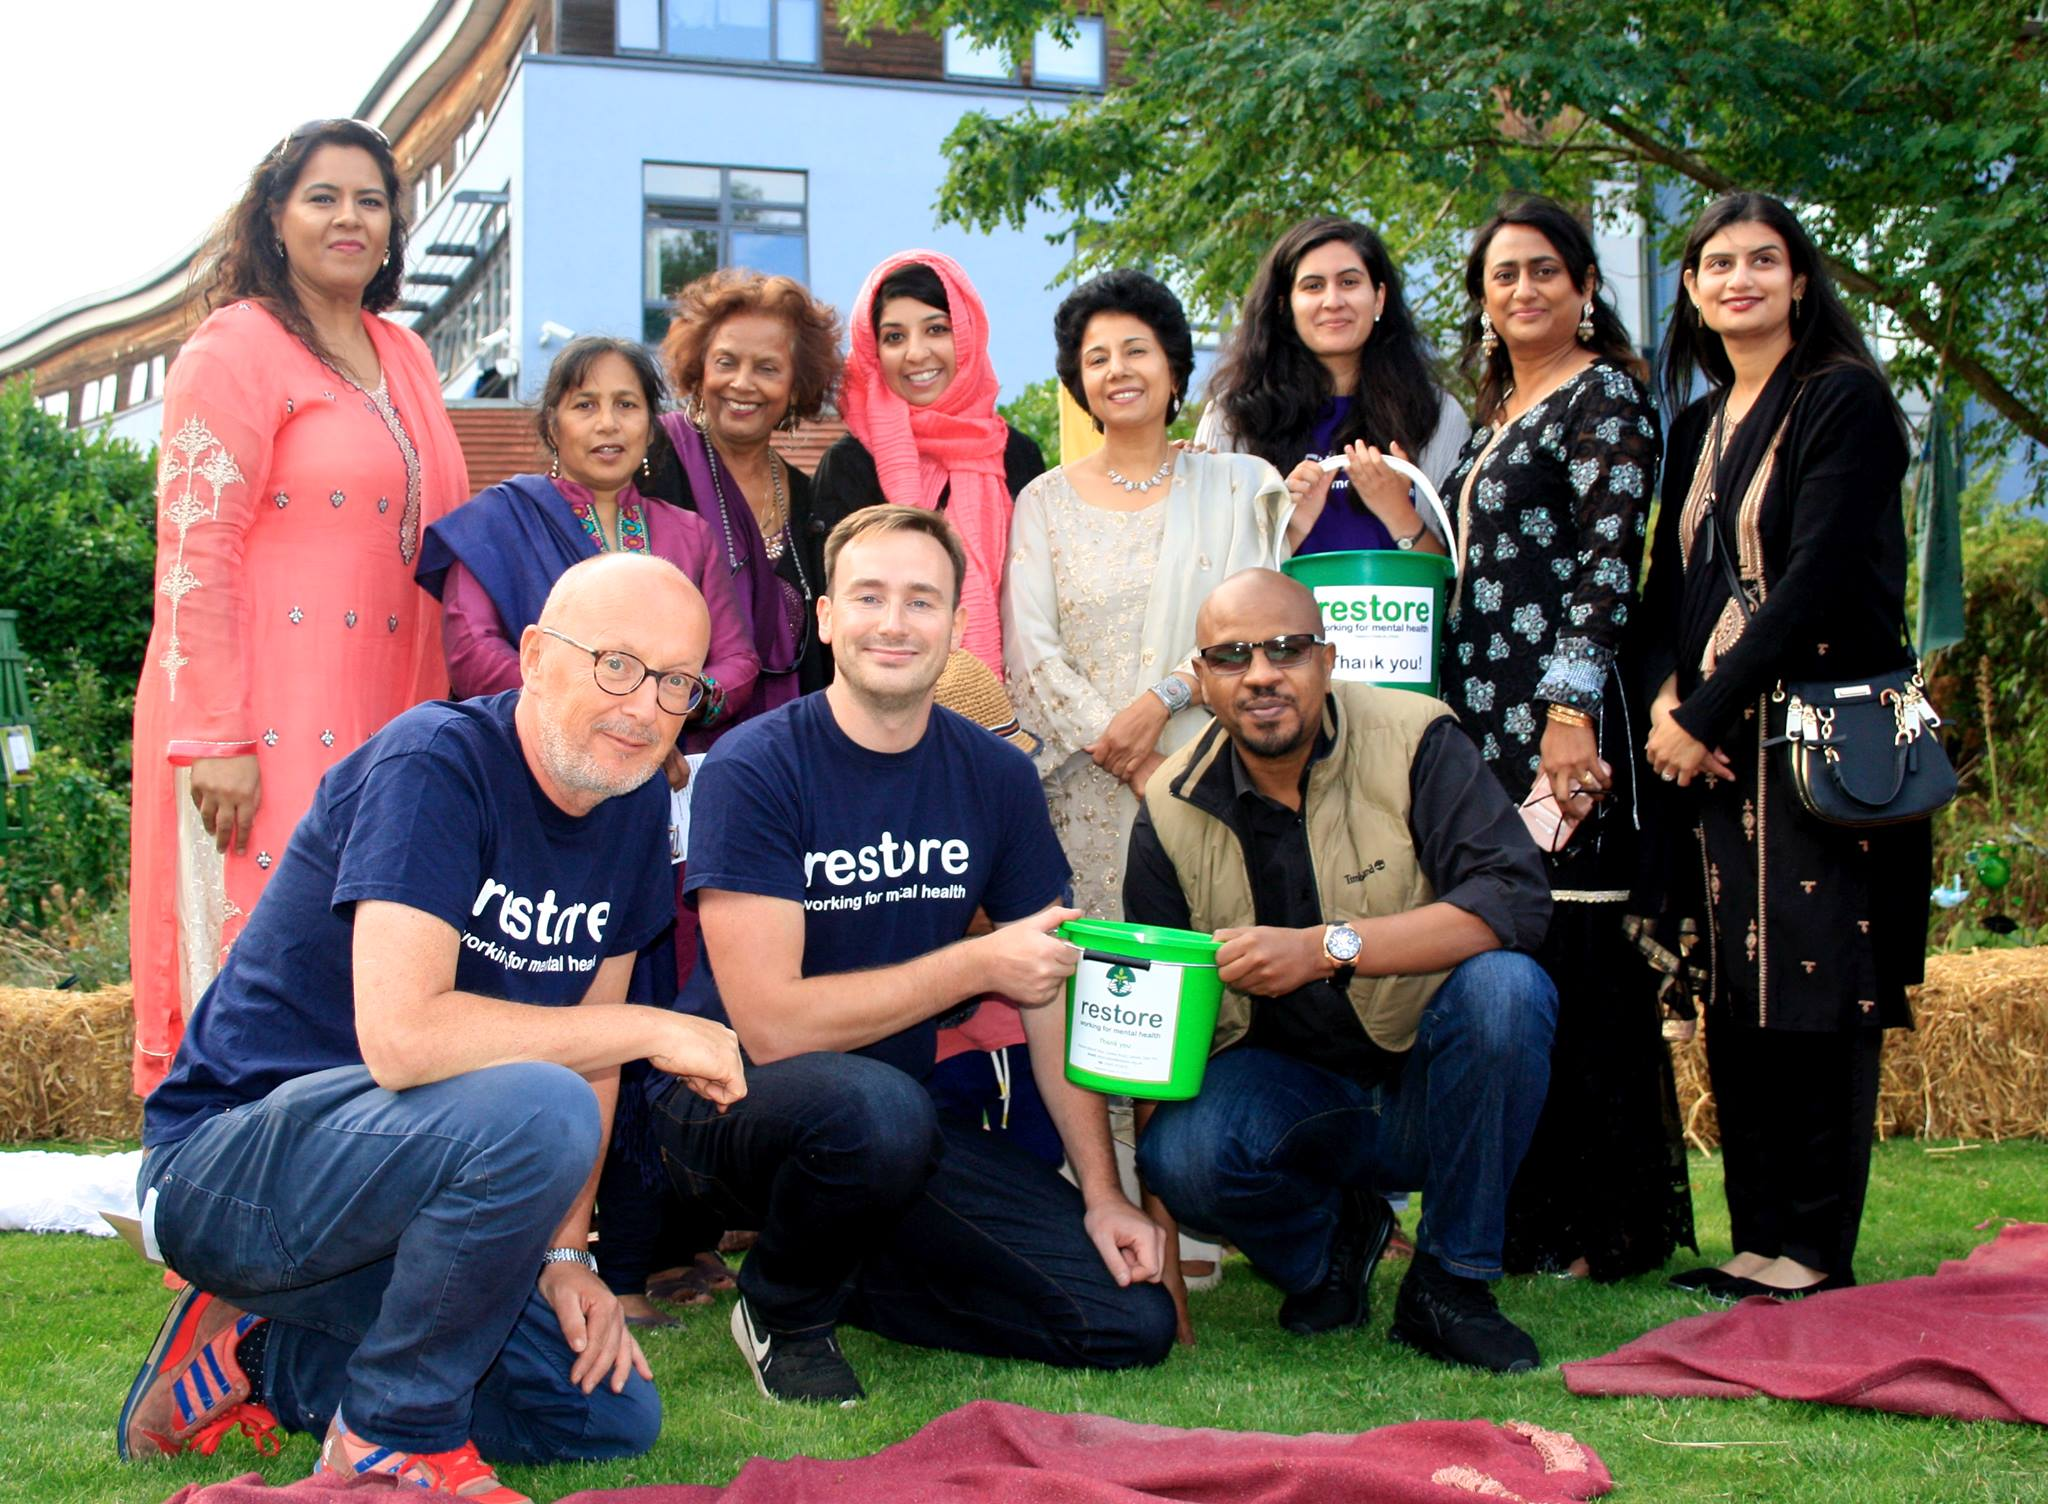 Restore and The People's Fair announce Eid Street Party for June